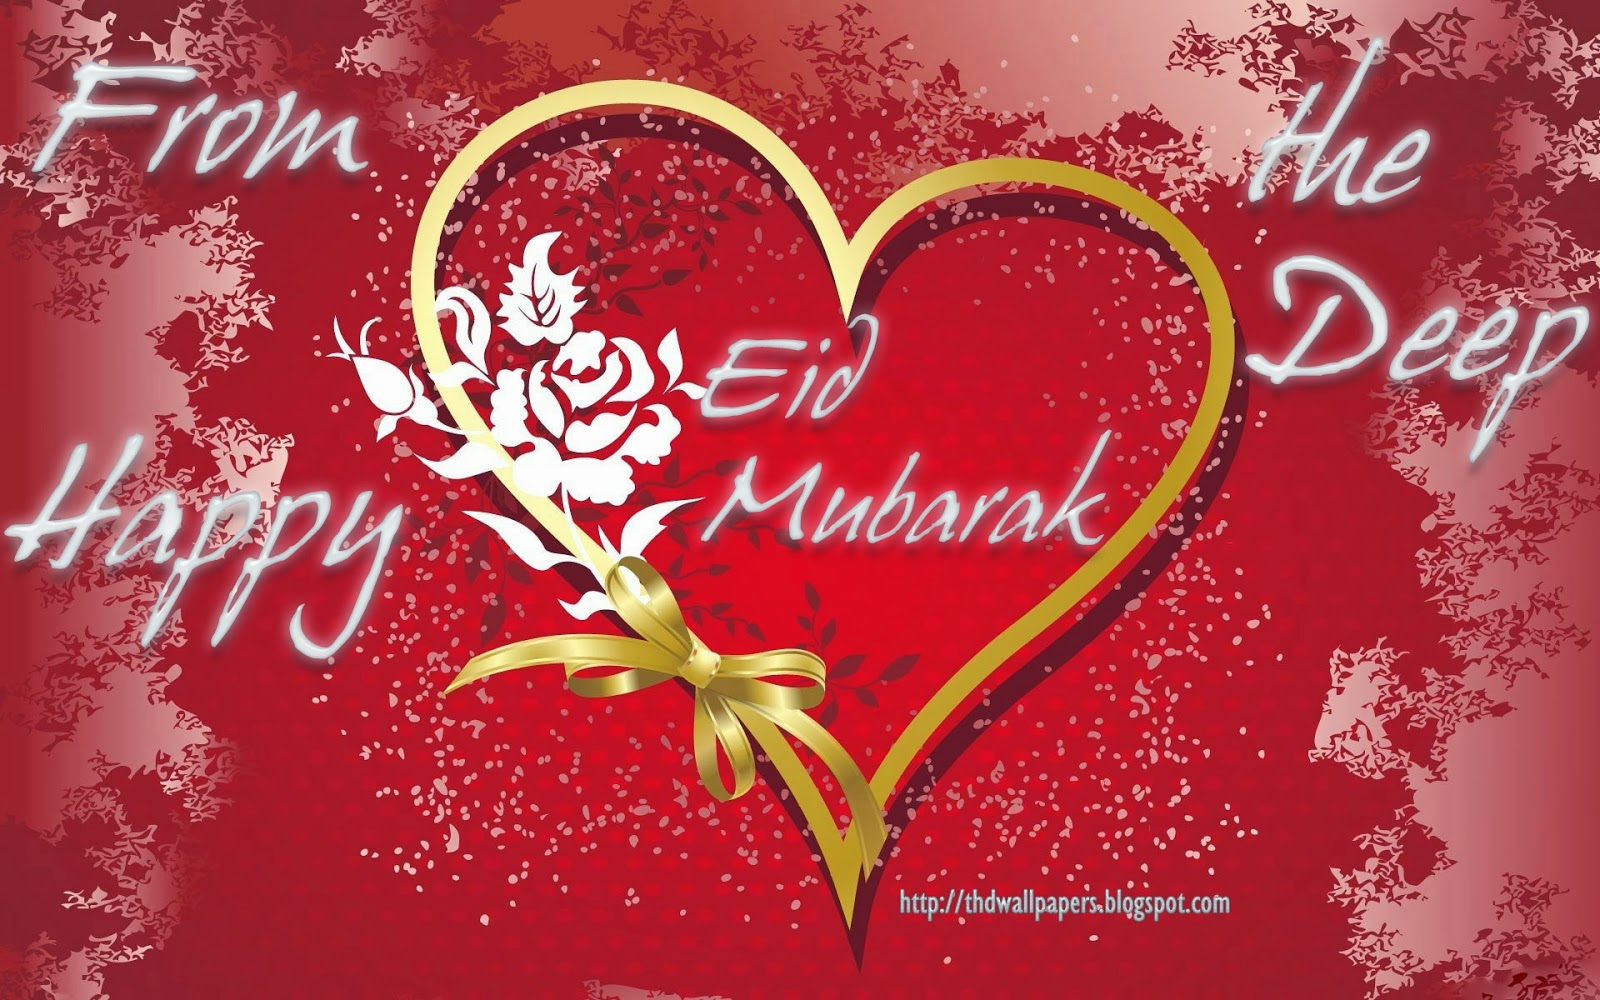 Eid ul adha mubarak greetings cards hd wallpapers free downloads eid ul adha mubarak greetings cards hd wallpapers for free download kristyandbryce Choice Image